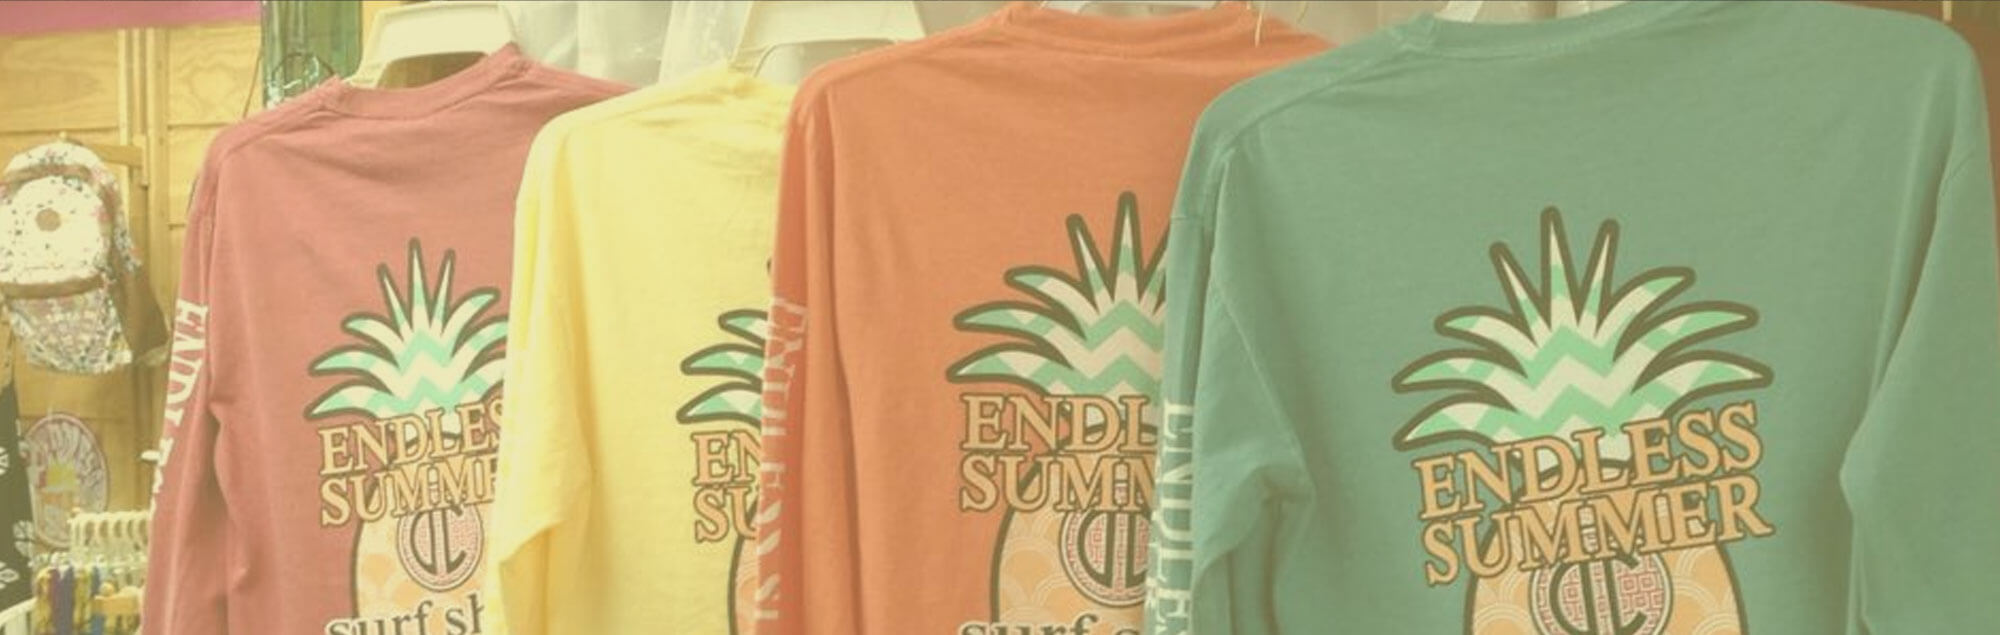 long sleeve shirts hanging on rack with endless summer logo on the back